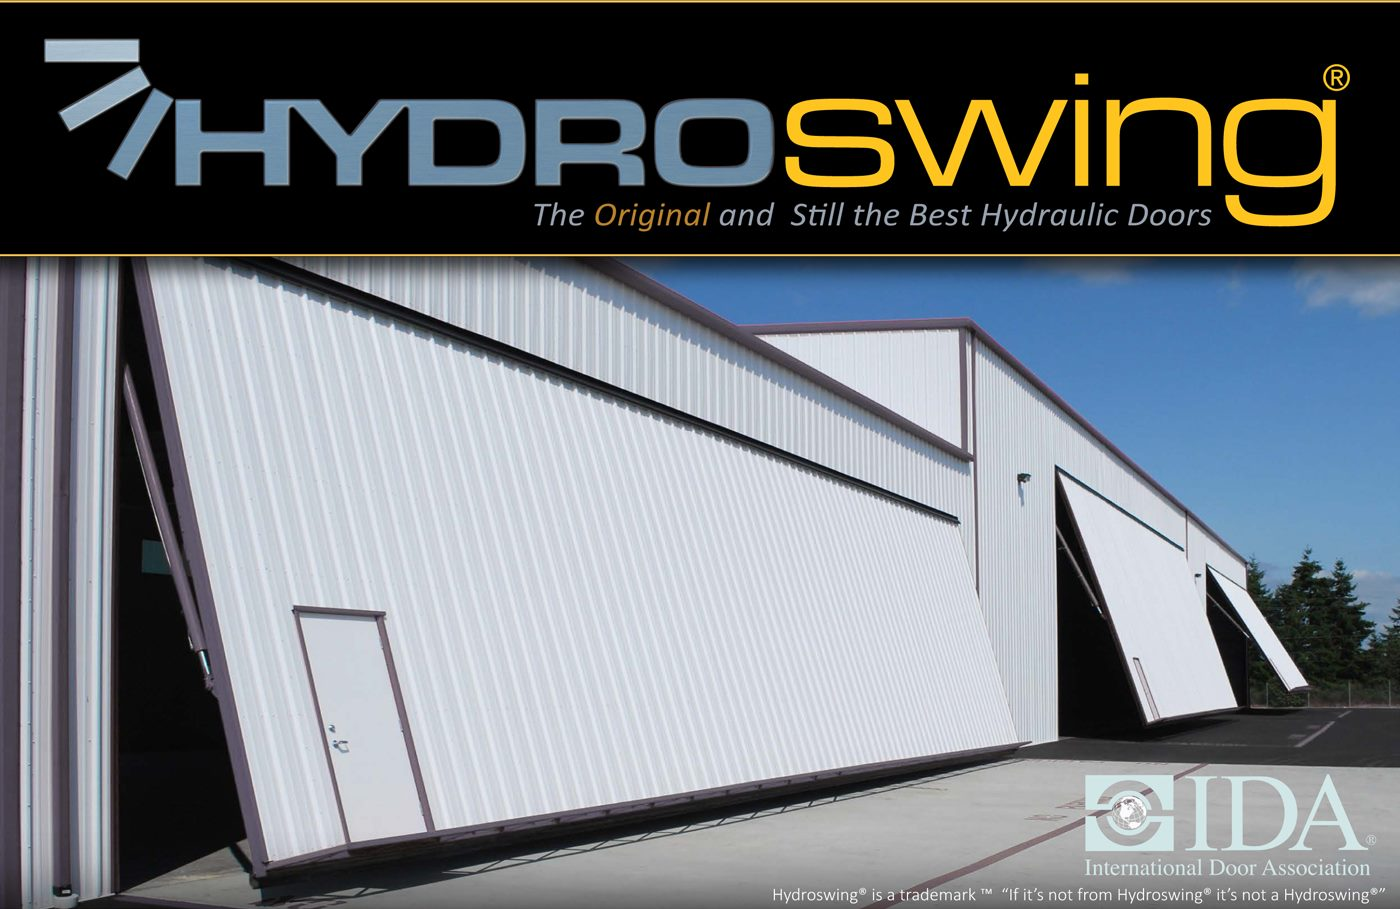 canada hydraulic doors international door association